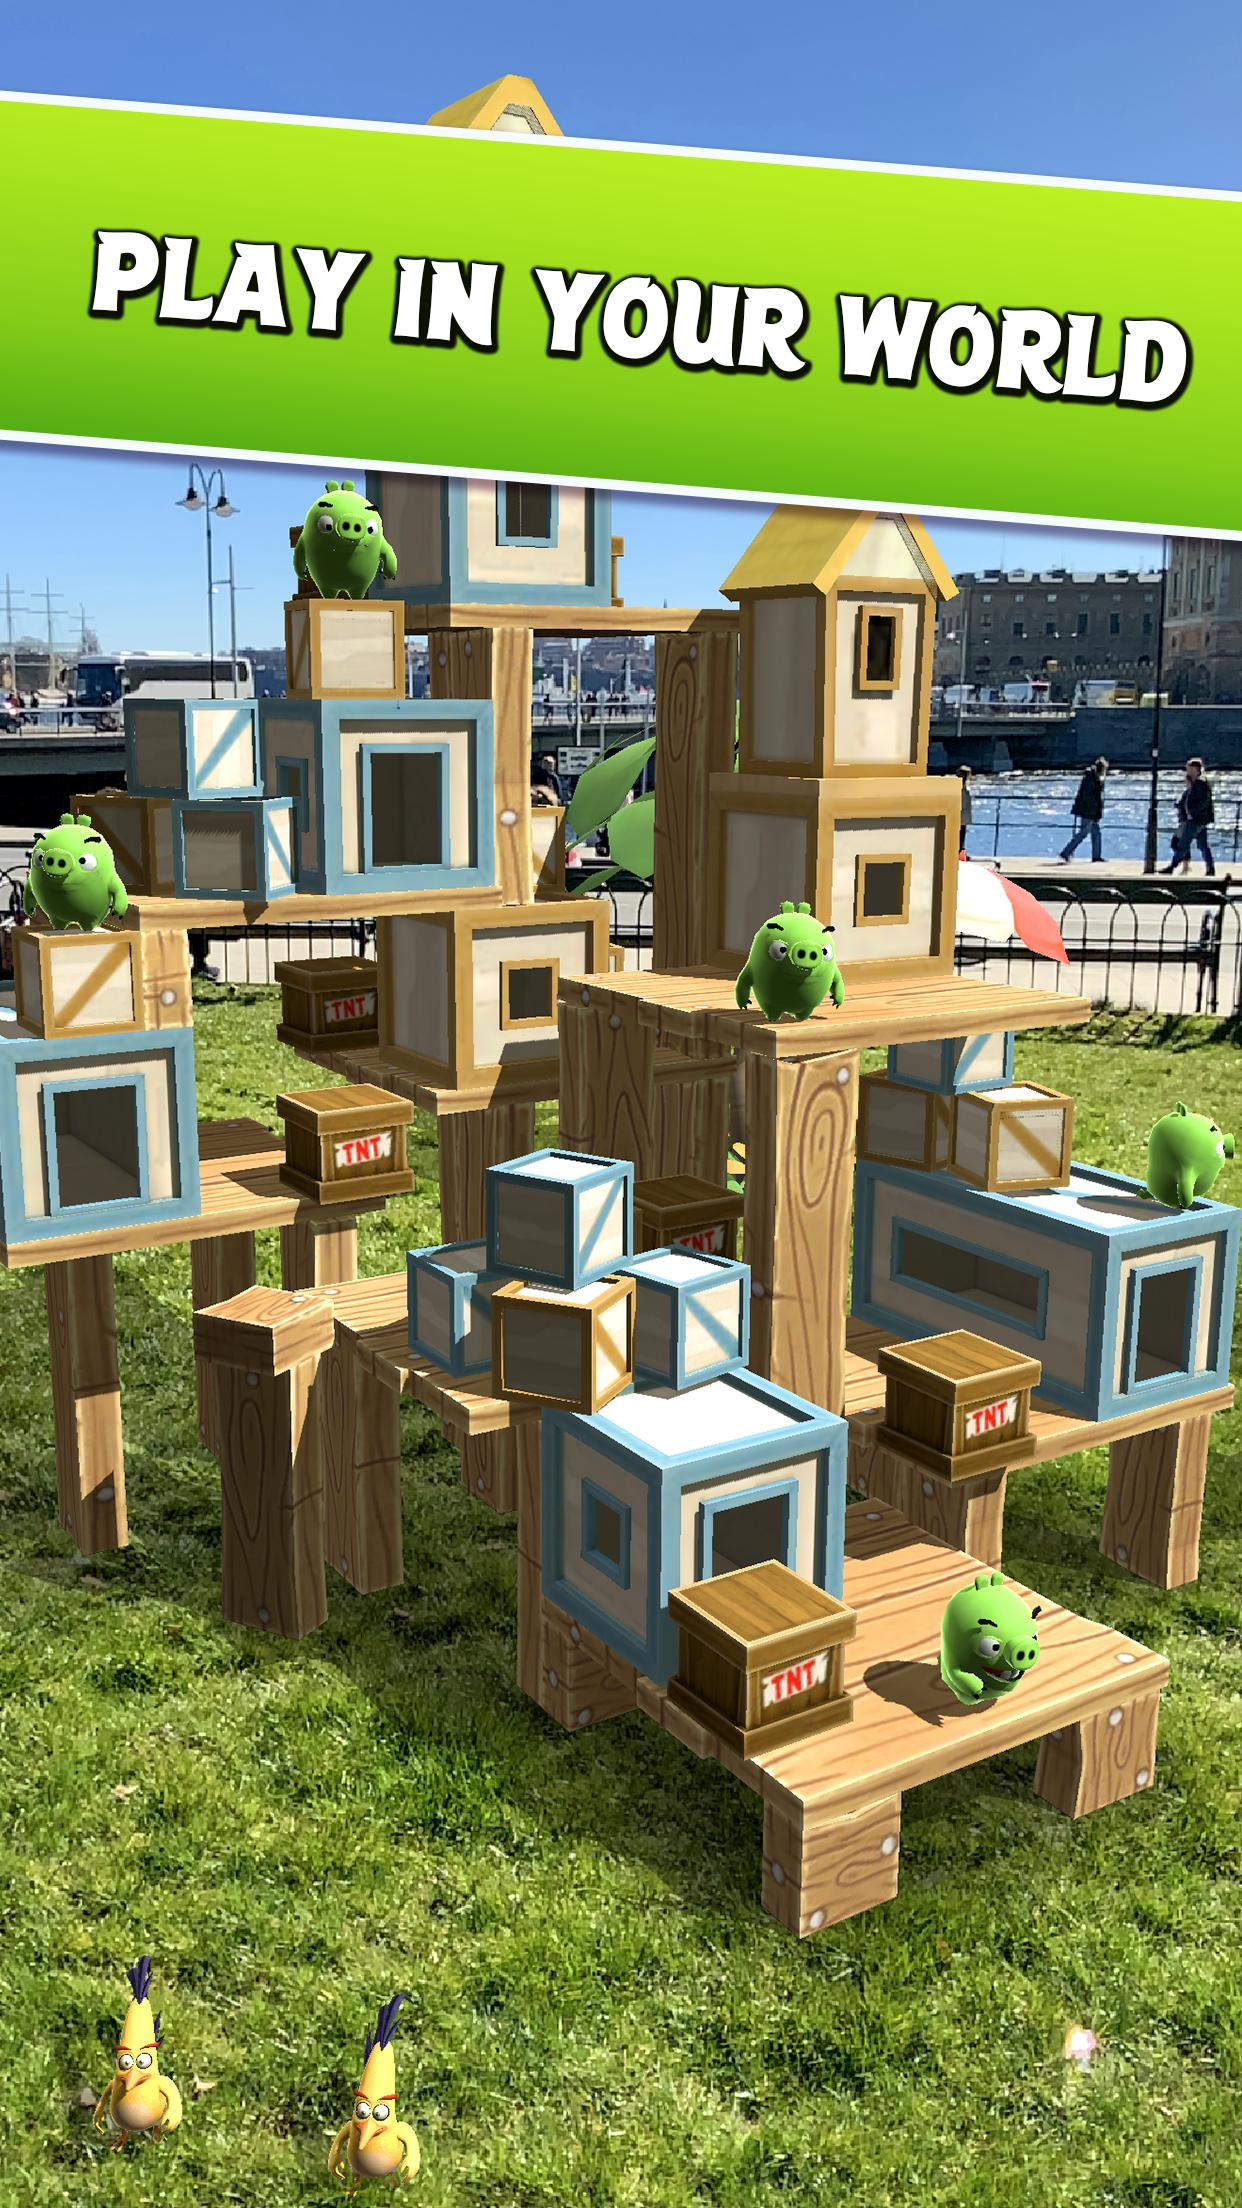 Angry Birds AR: Isle of Pigs 1.1.2.57453 Screenshot 2